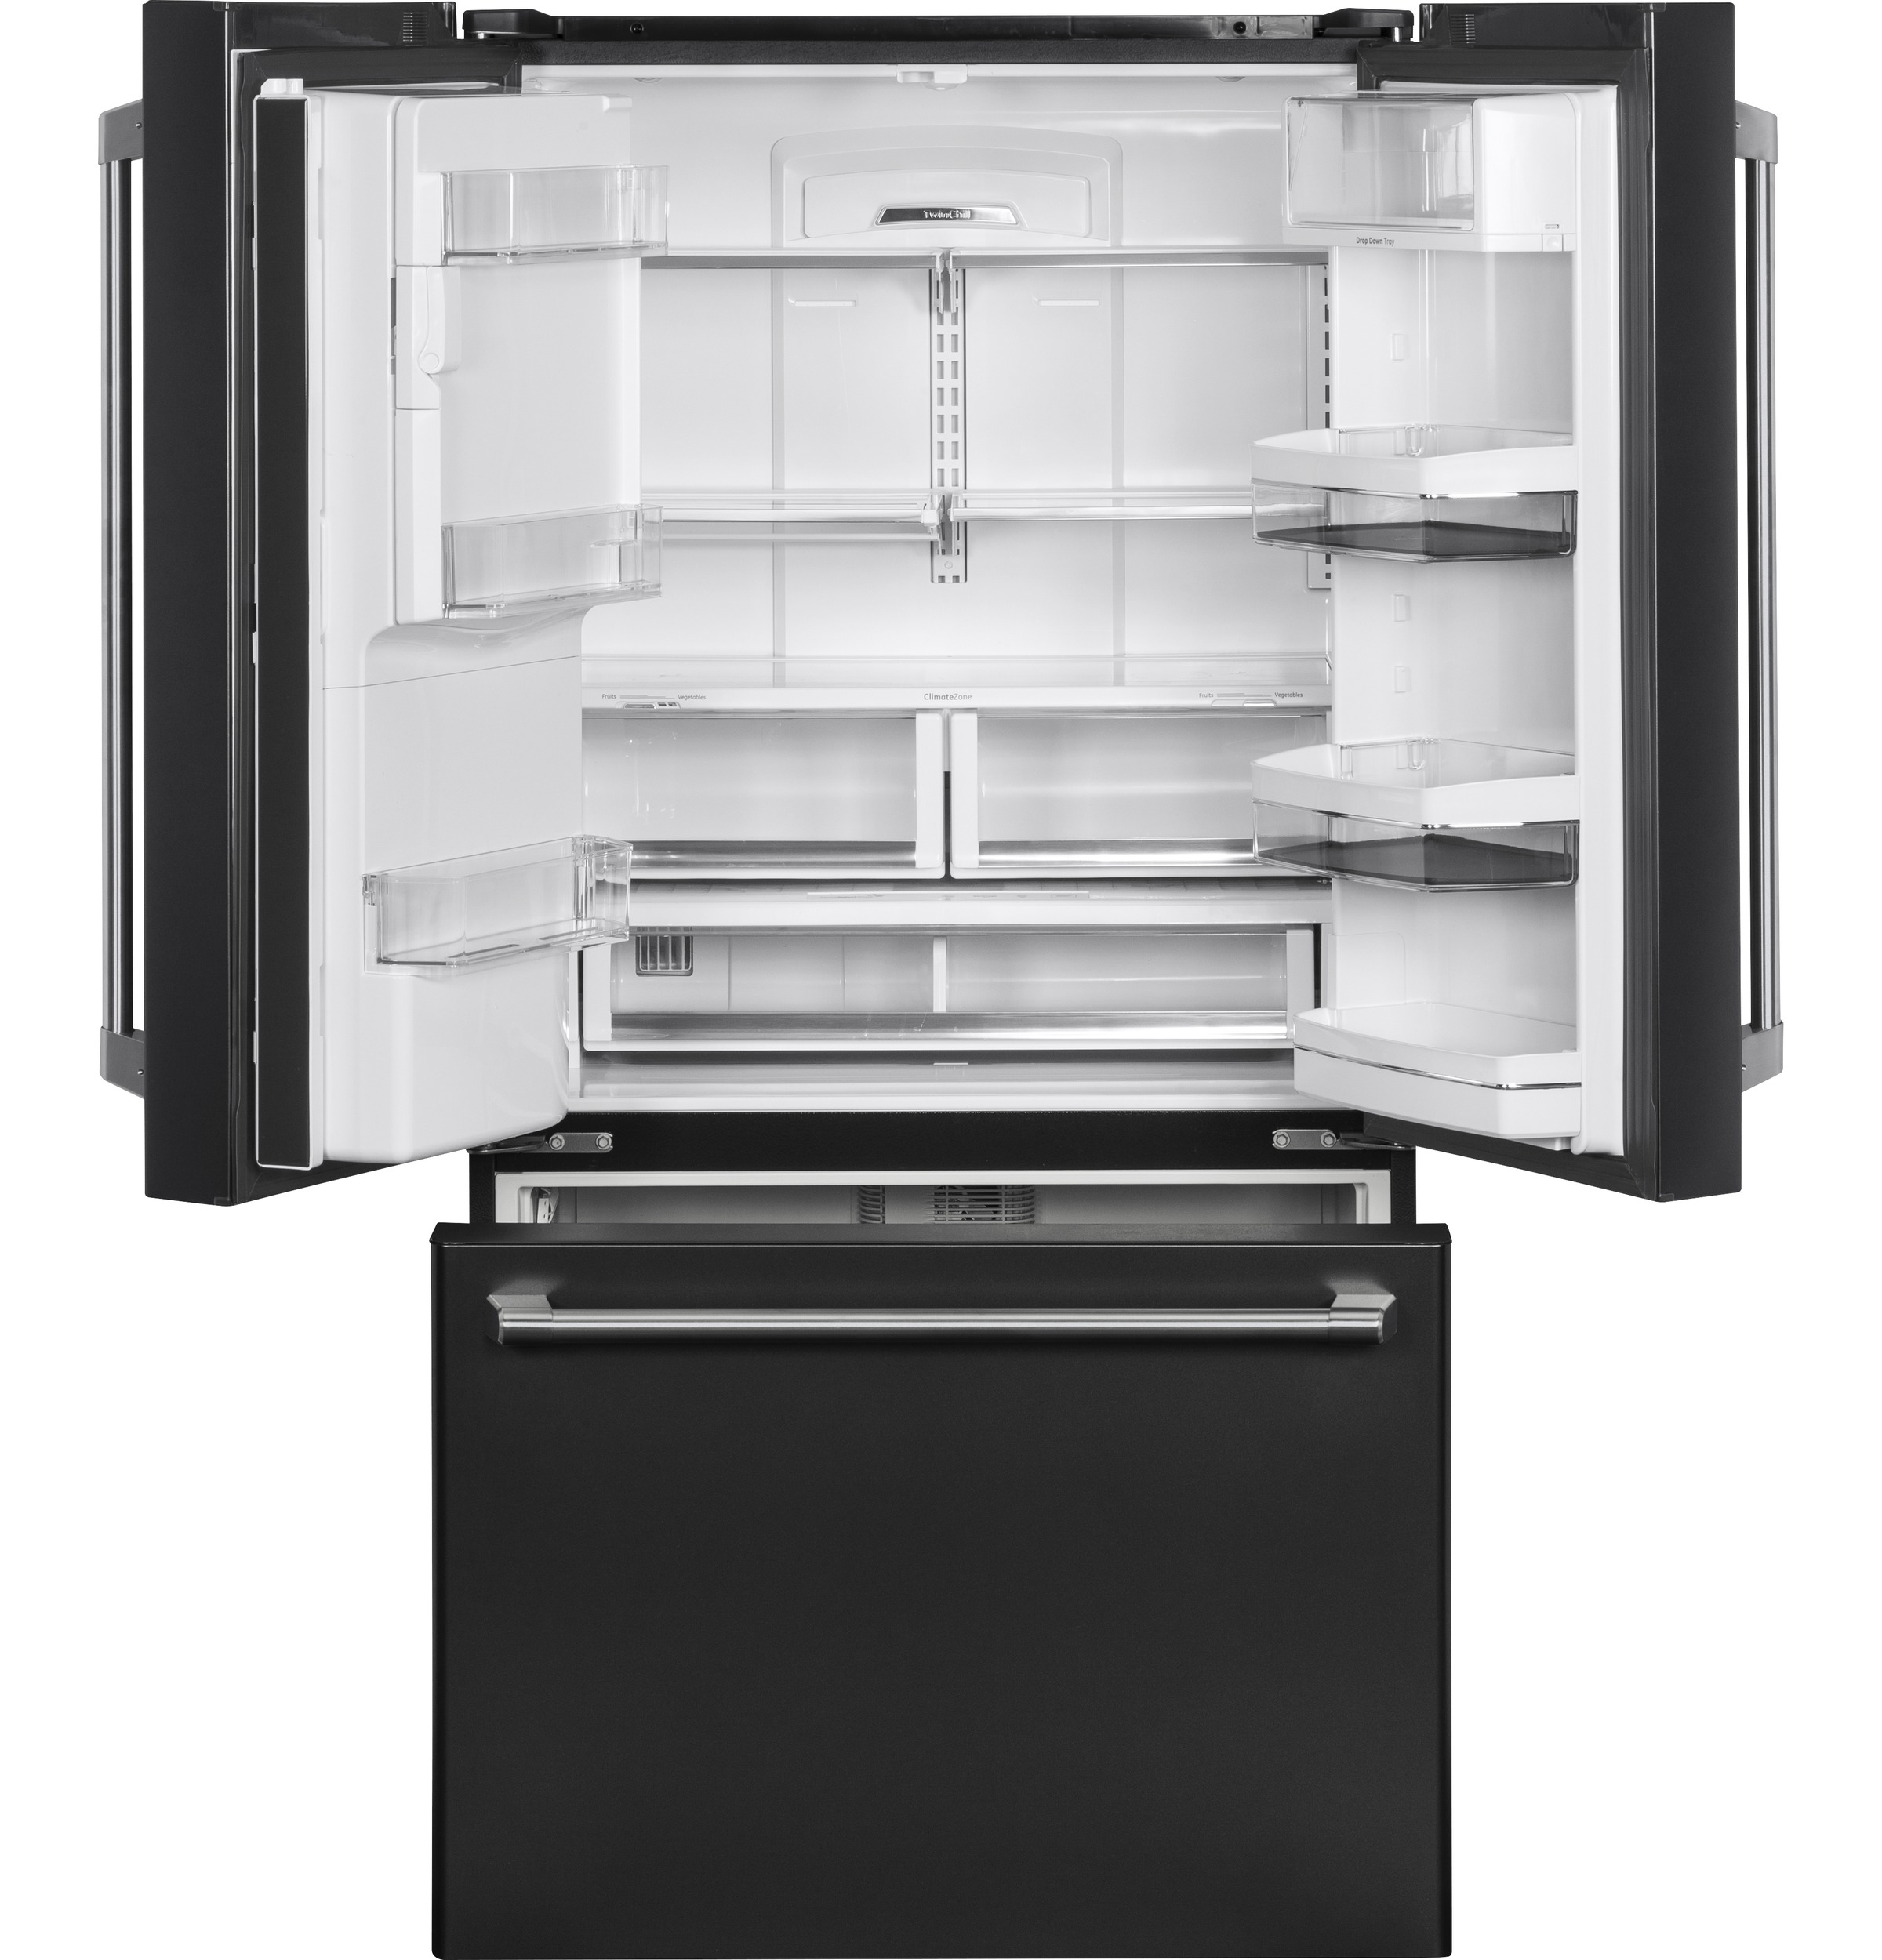 Model: CYE22UELDS | GE Café™ Series ENERGY STAR® 22.2 Cu. Ft. Counter-Depth French-Door Refrigerator with Keurig® K-Cup® Brewing System